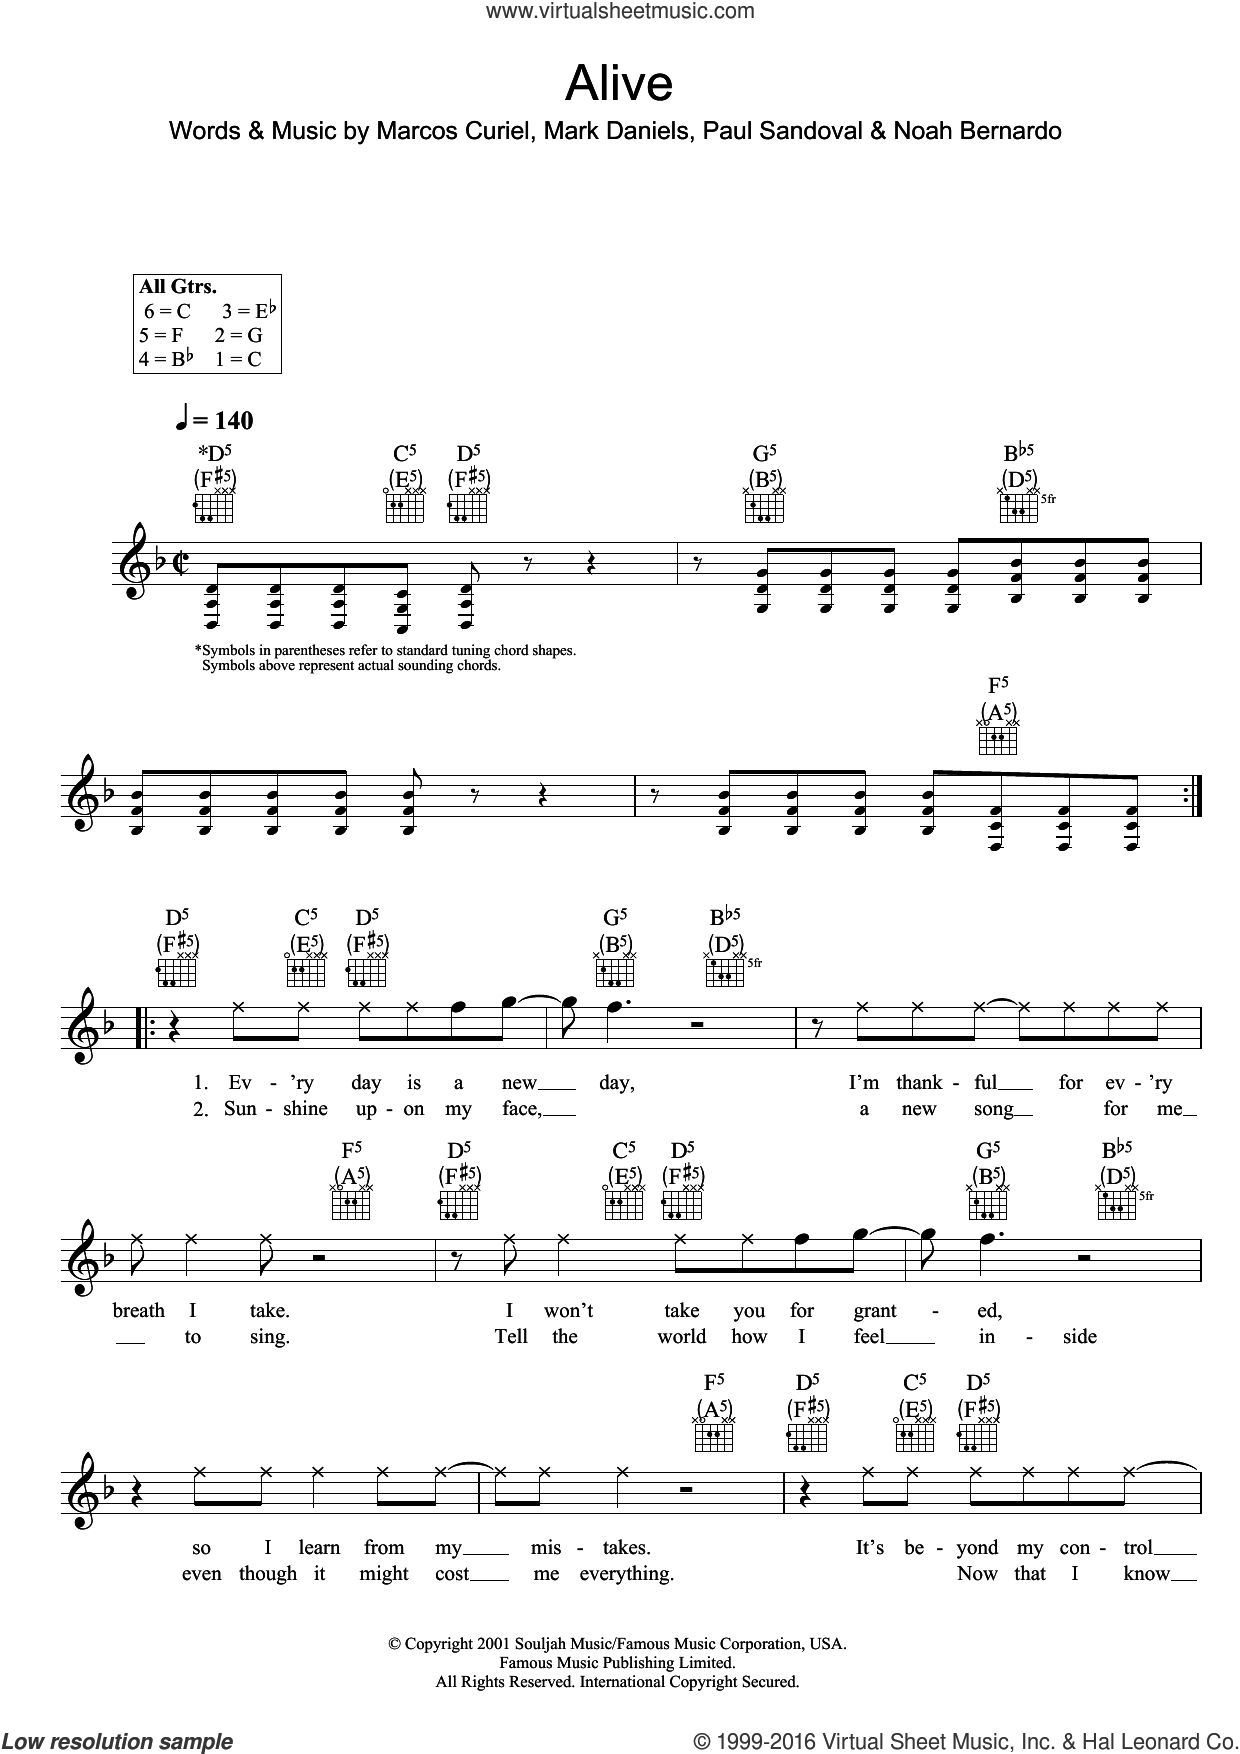 Alive sheet music for voice and other instruments (fake book) by P.O.D., Marcos Curiel, Mark Daniels, Noah Bernardo and Paul Sandoval, intermediate skill level